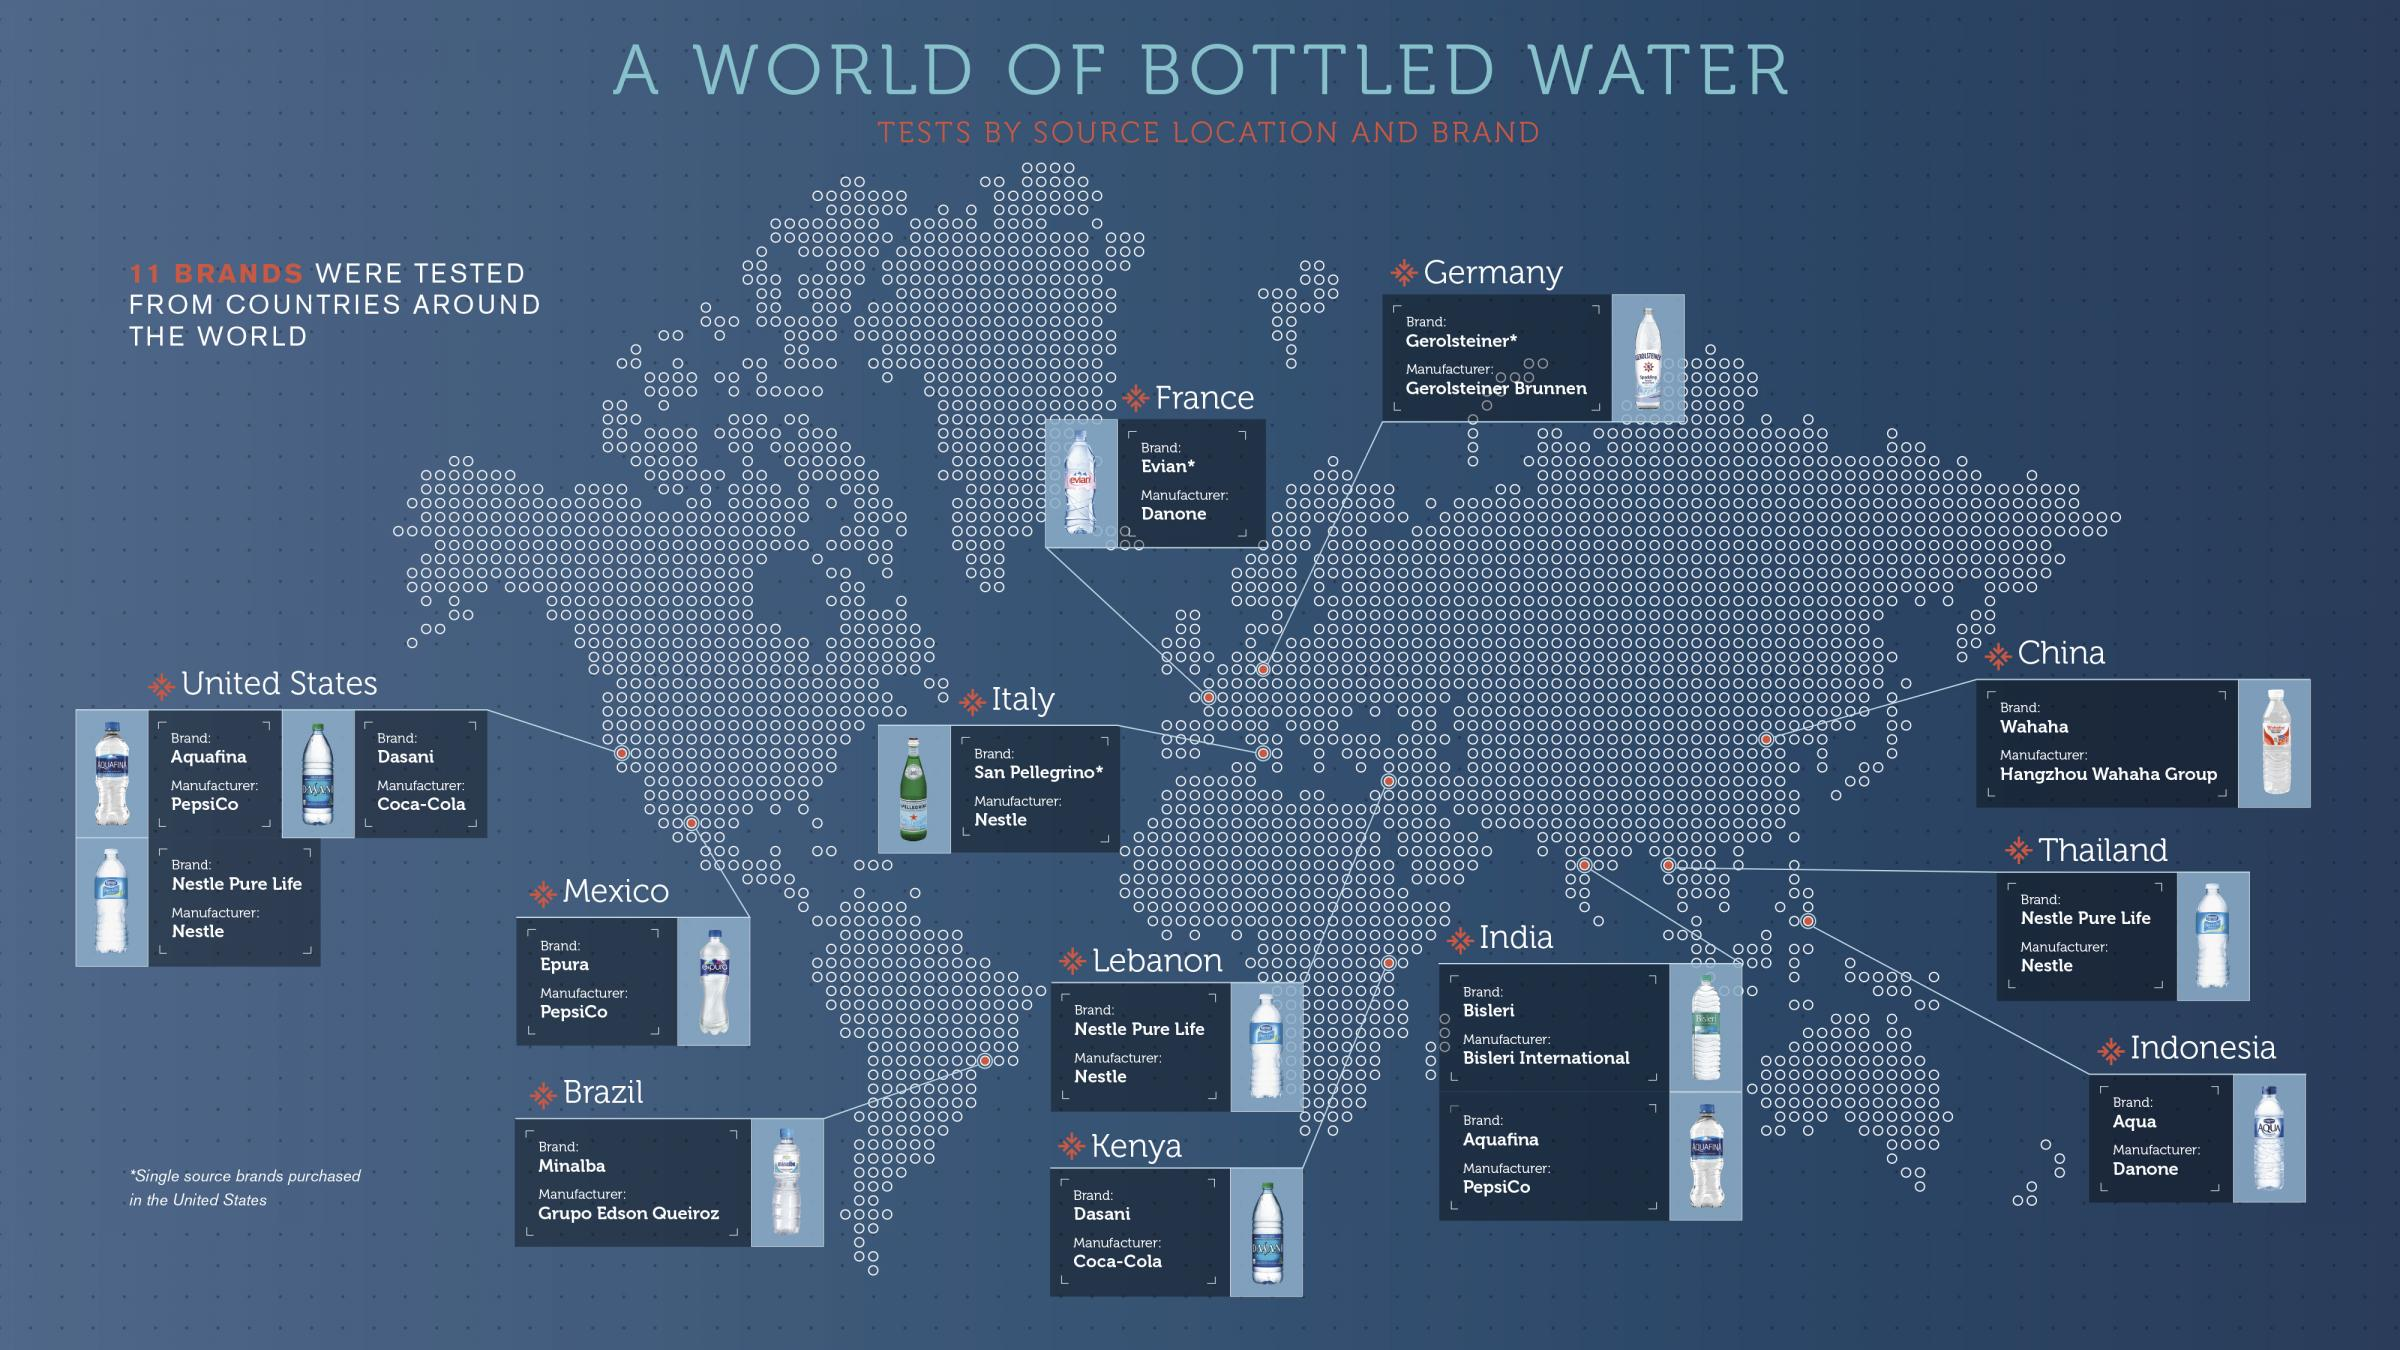 Microplastics Found In 11 Major Global Bottled Water Brands